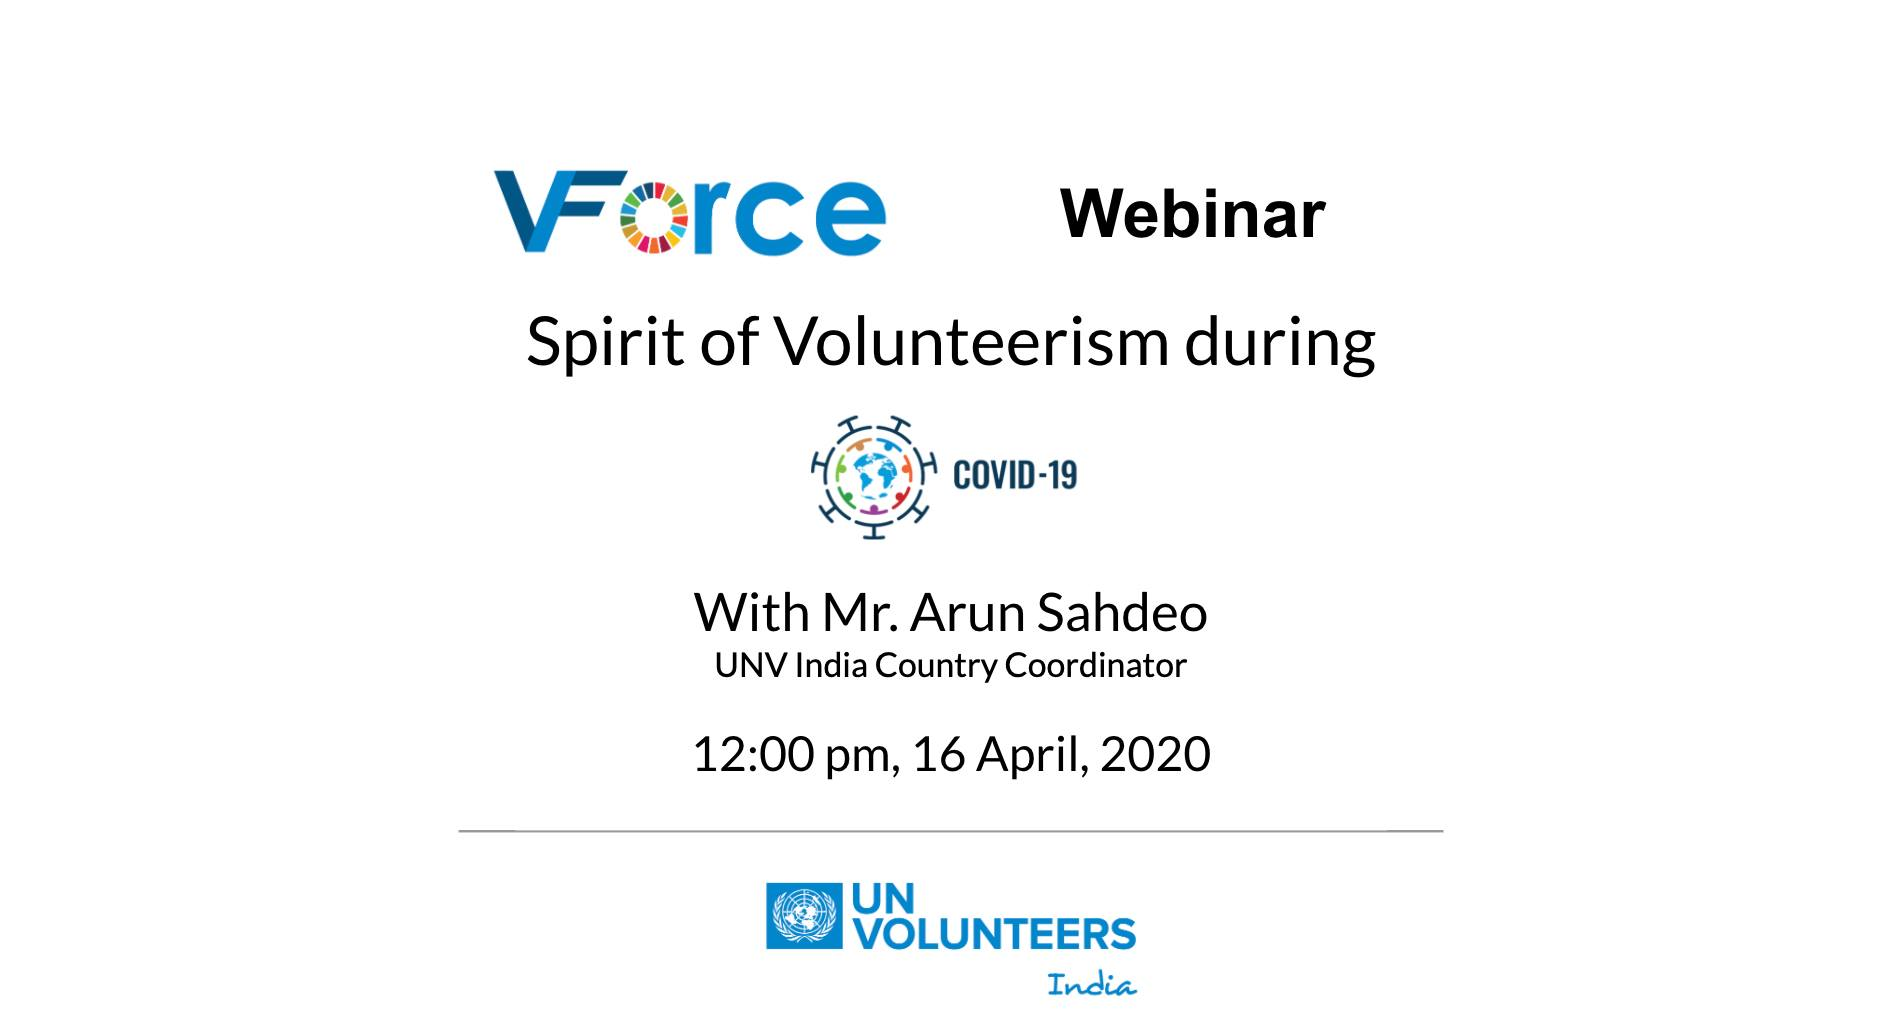 Spirit of Vol 16 april Arun